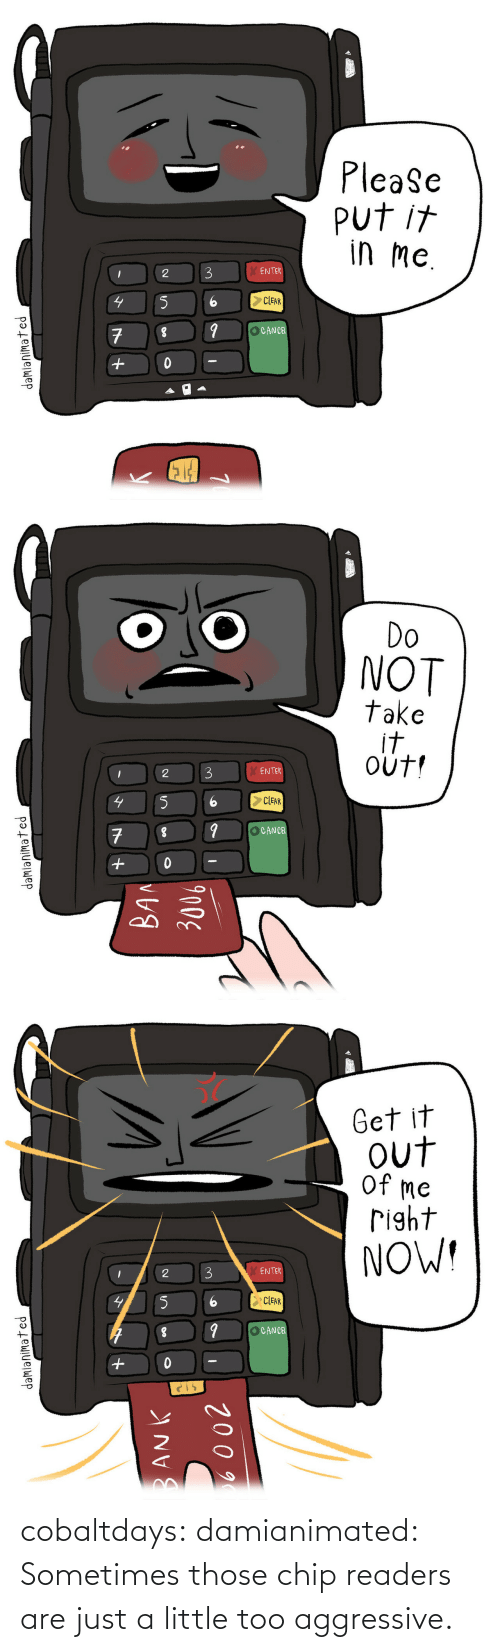 those: cobaltdays: damianimated: Sometimes those chip readers are just a little too aggressive.